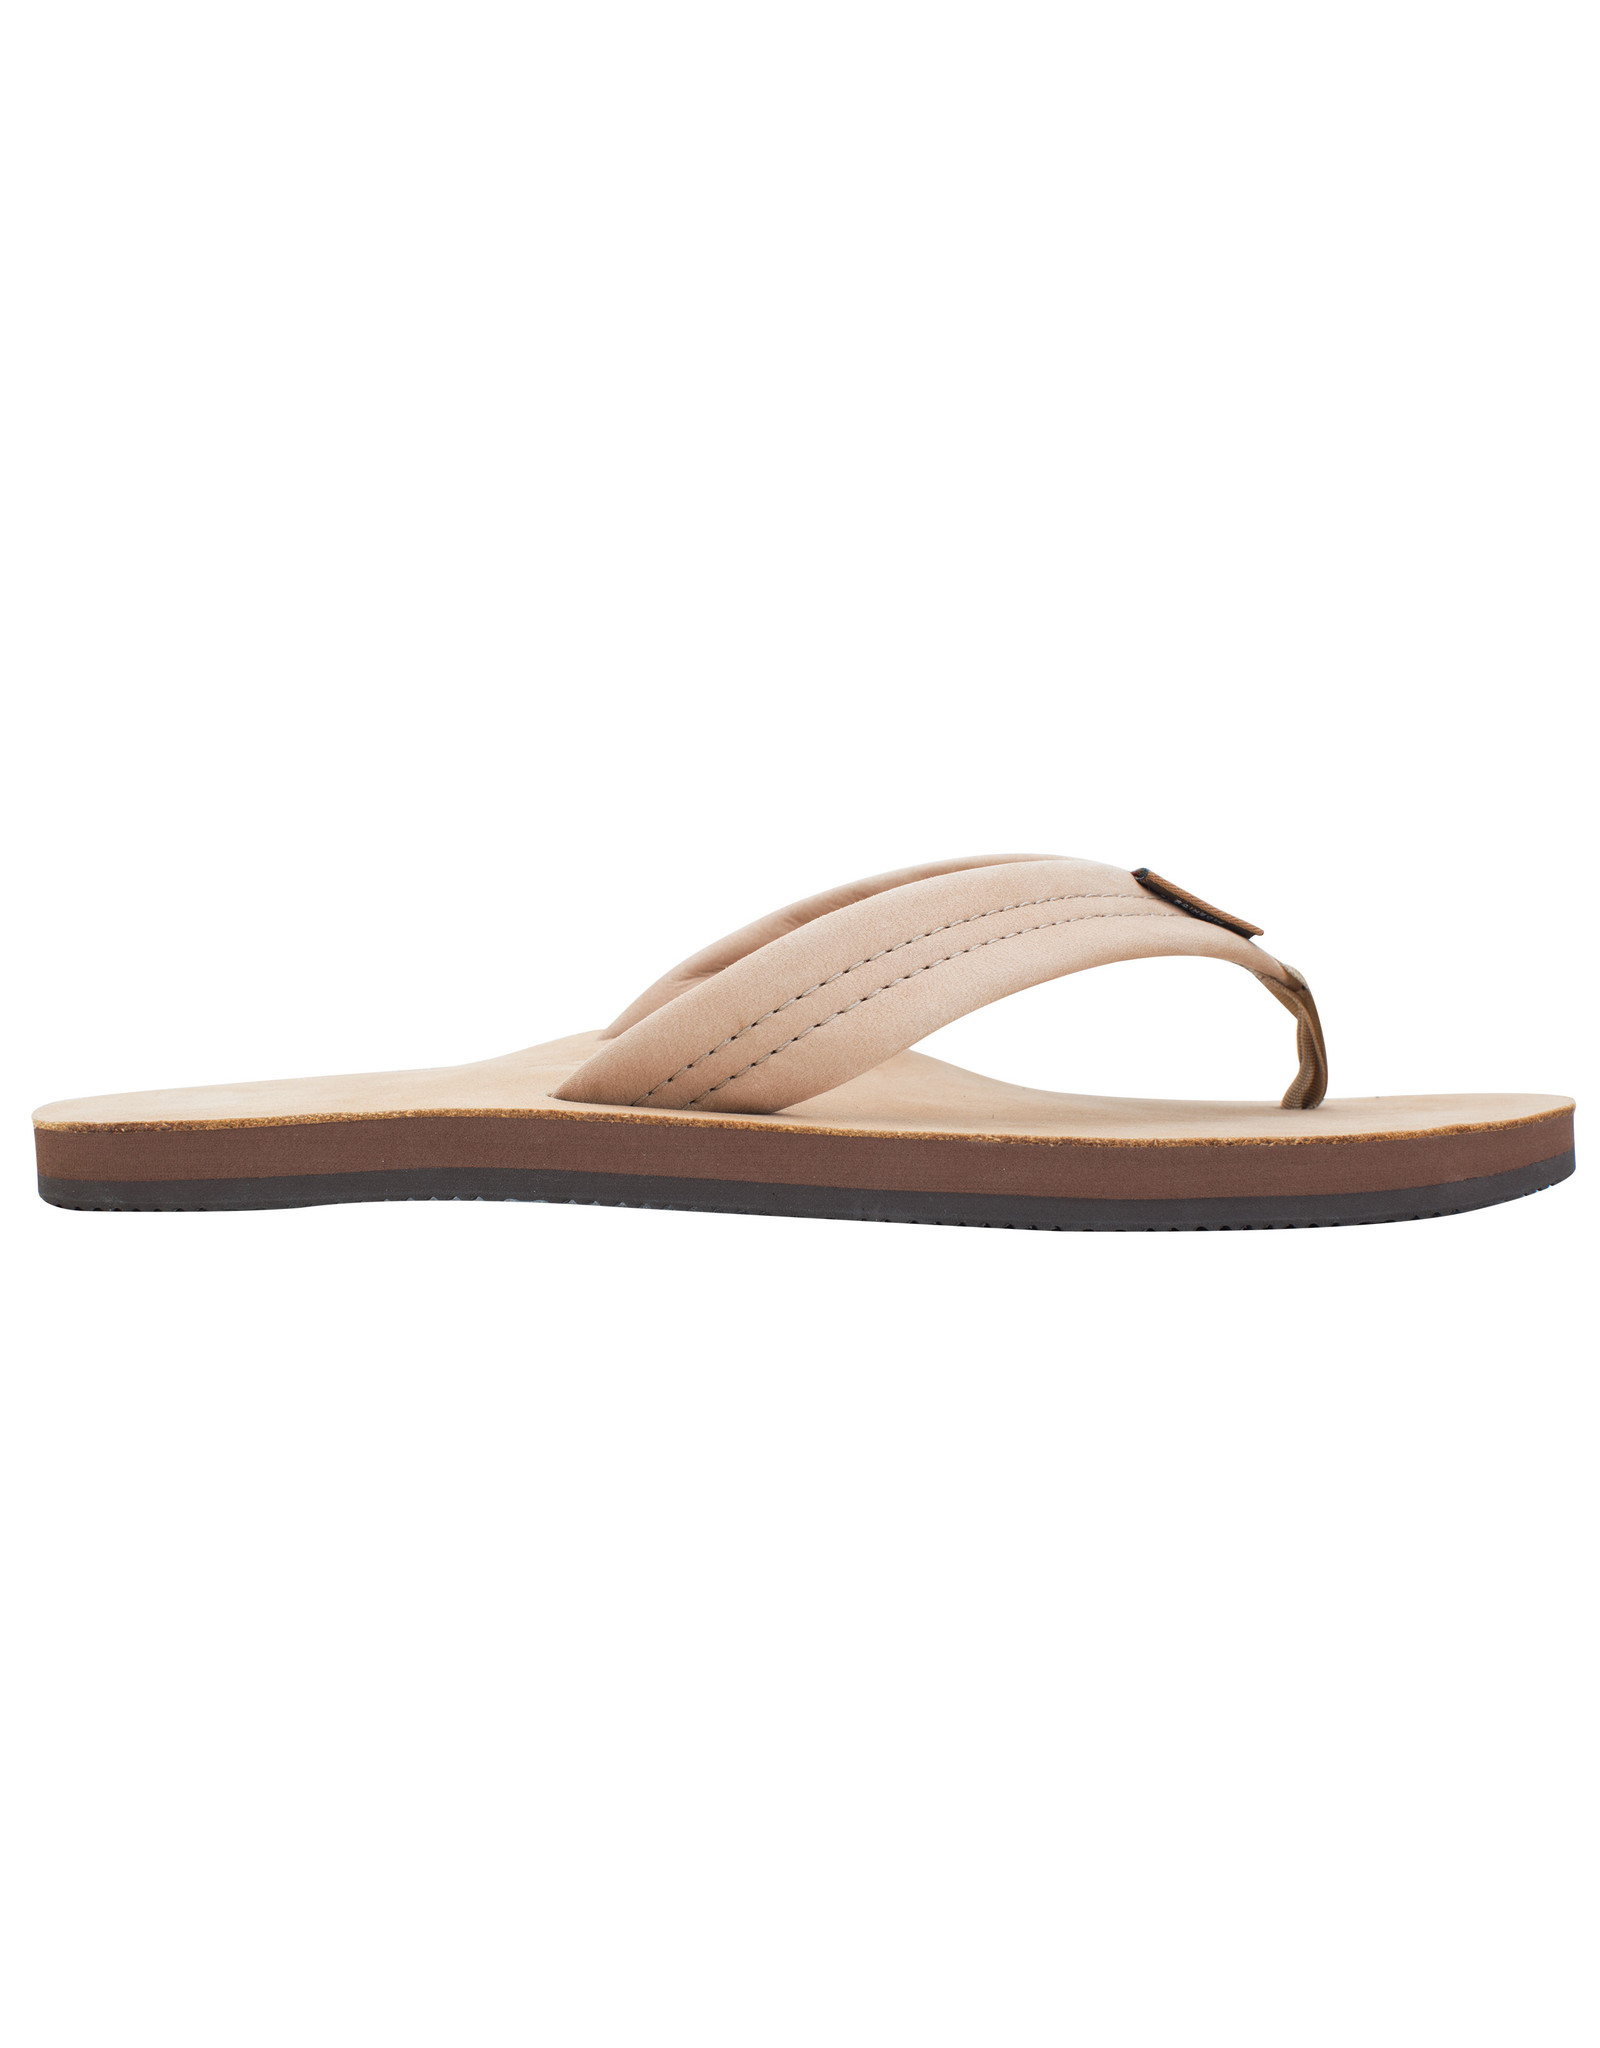 Rainbow Sandals Womens Premier Leather Single Layer Arch Sierra Brown